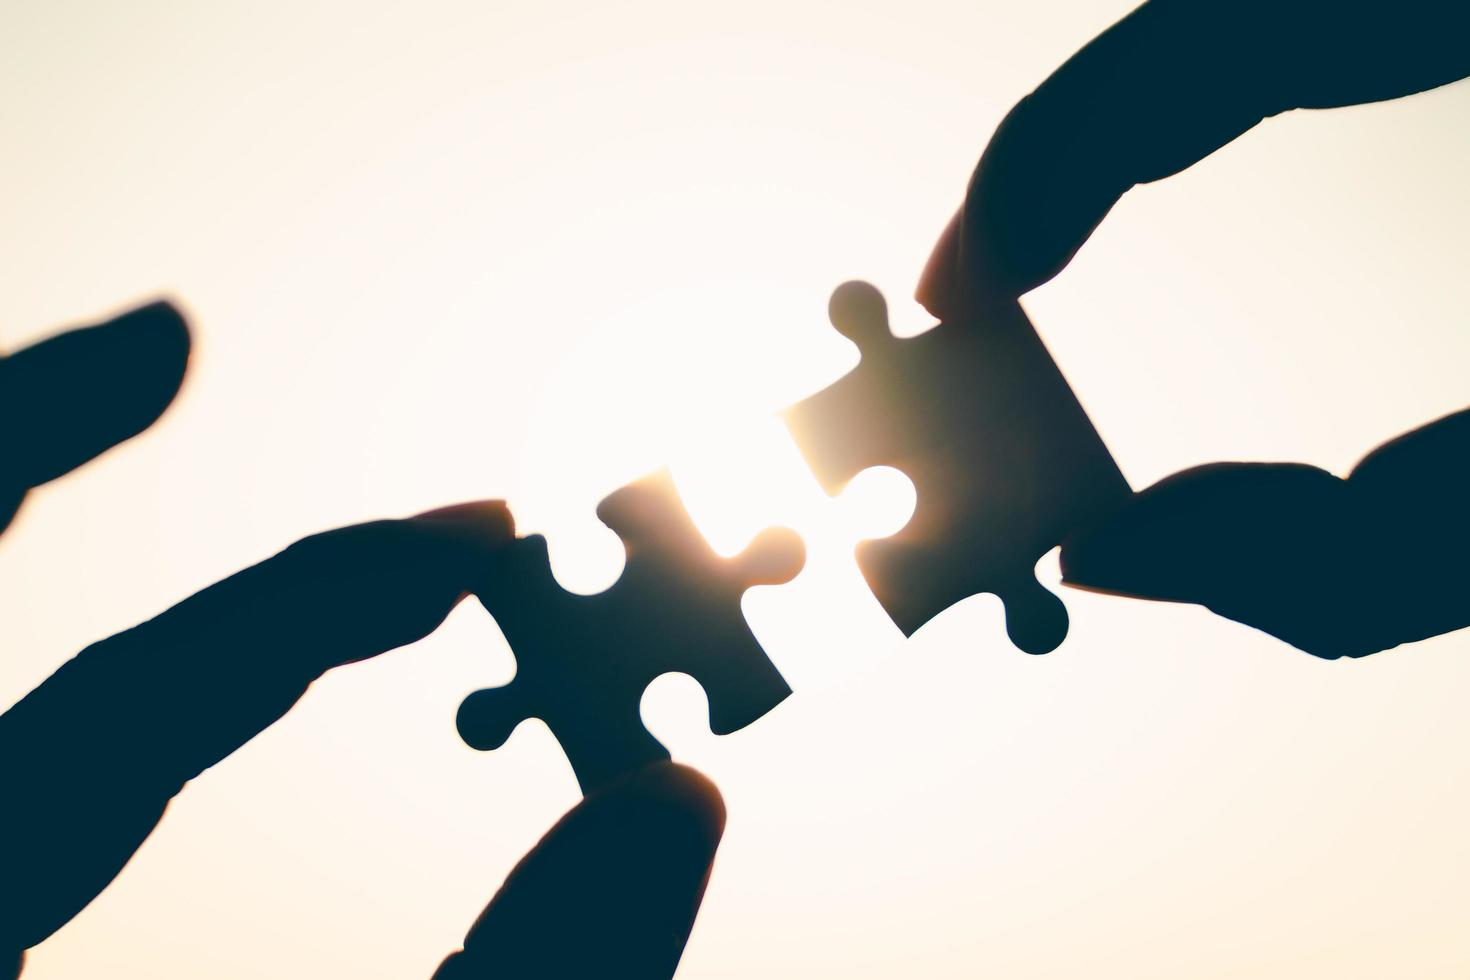 Silhouette of closeup woman and man hand connecting a piece of jigsaw puzzle over sunlight effect. symbol of association and connection concept. business strategy. photo